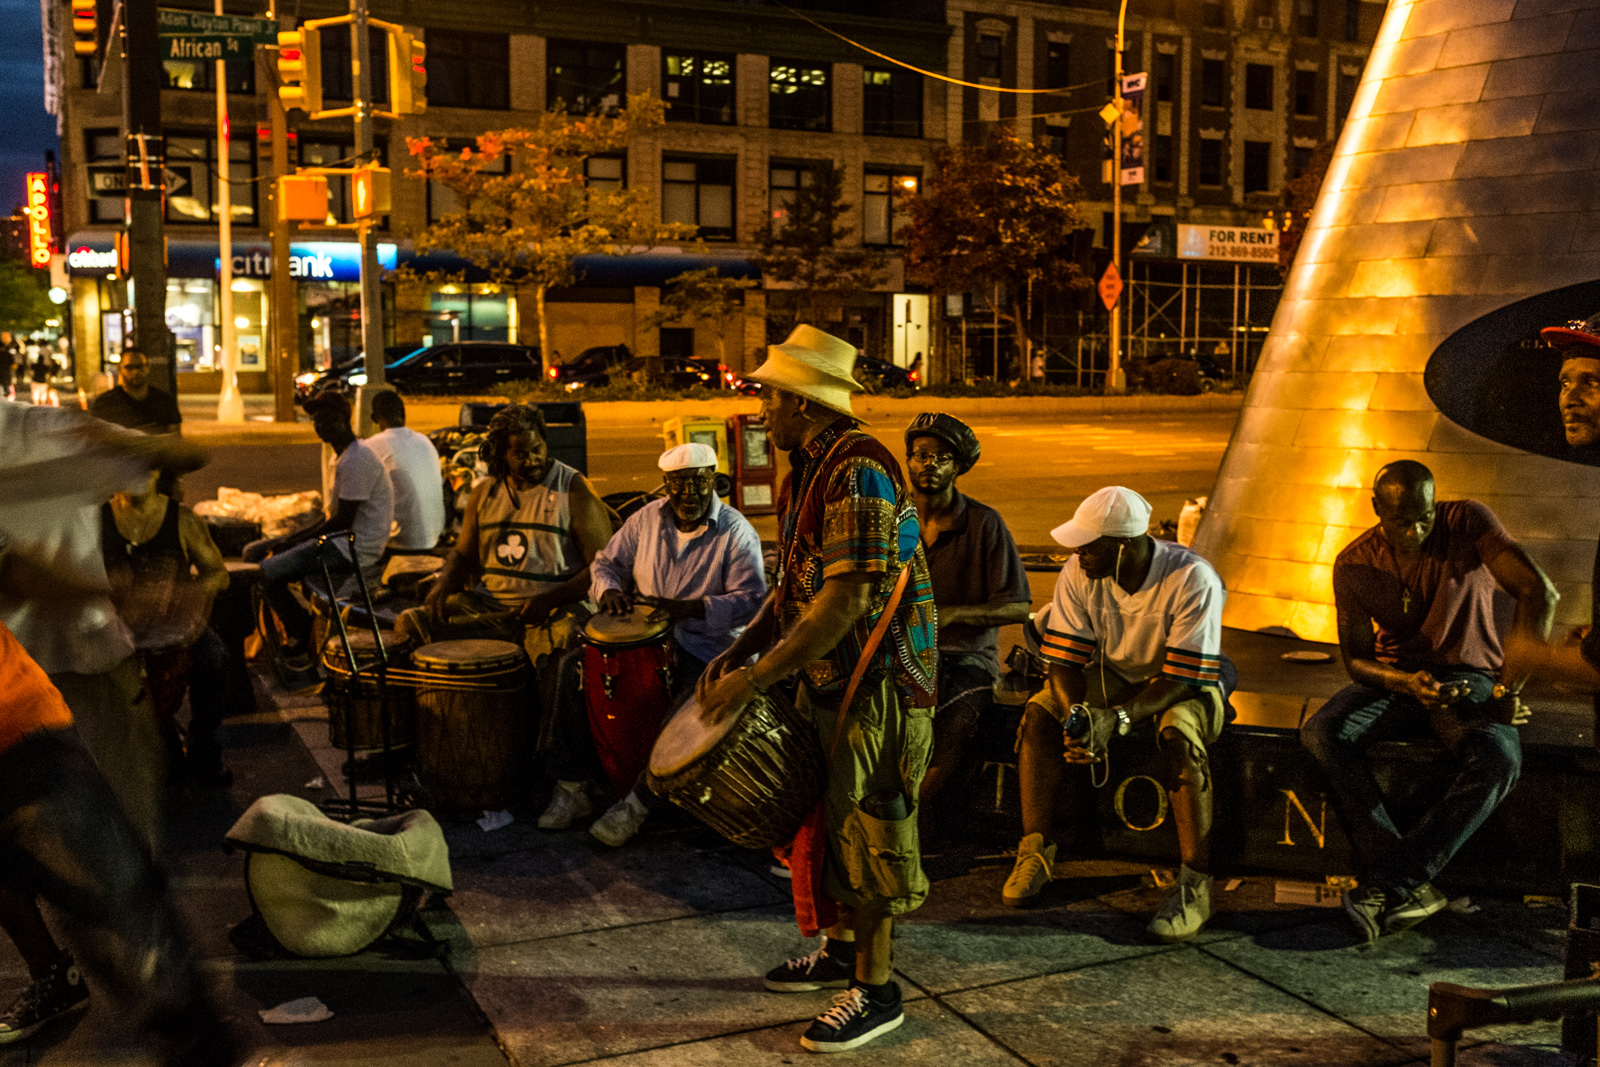 Drummer's Circle at African Square on 125th and Adam Clayton Powell